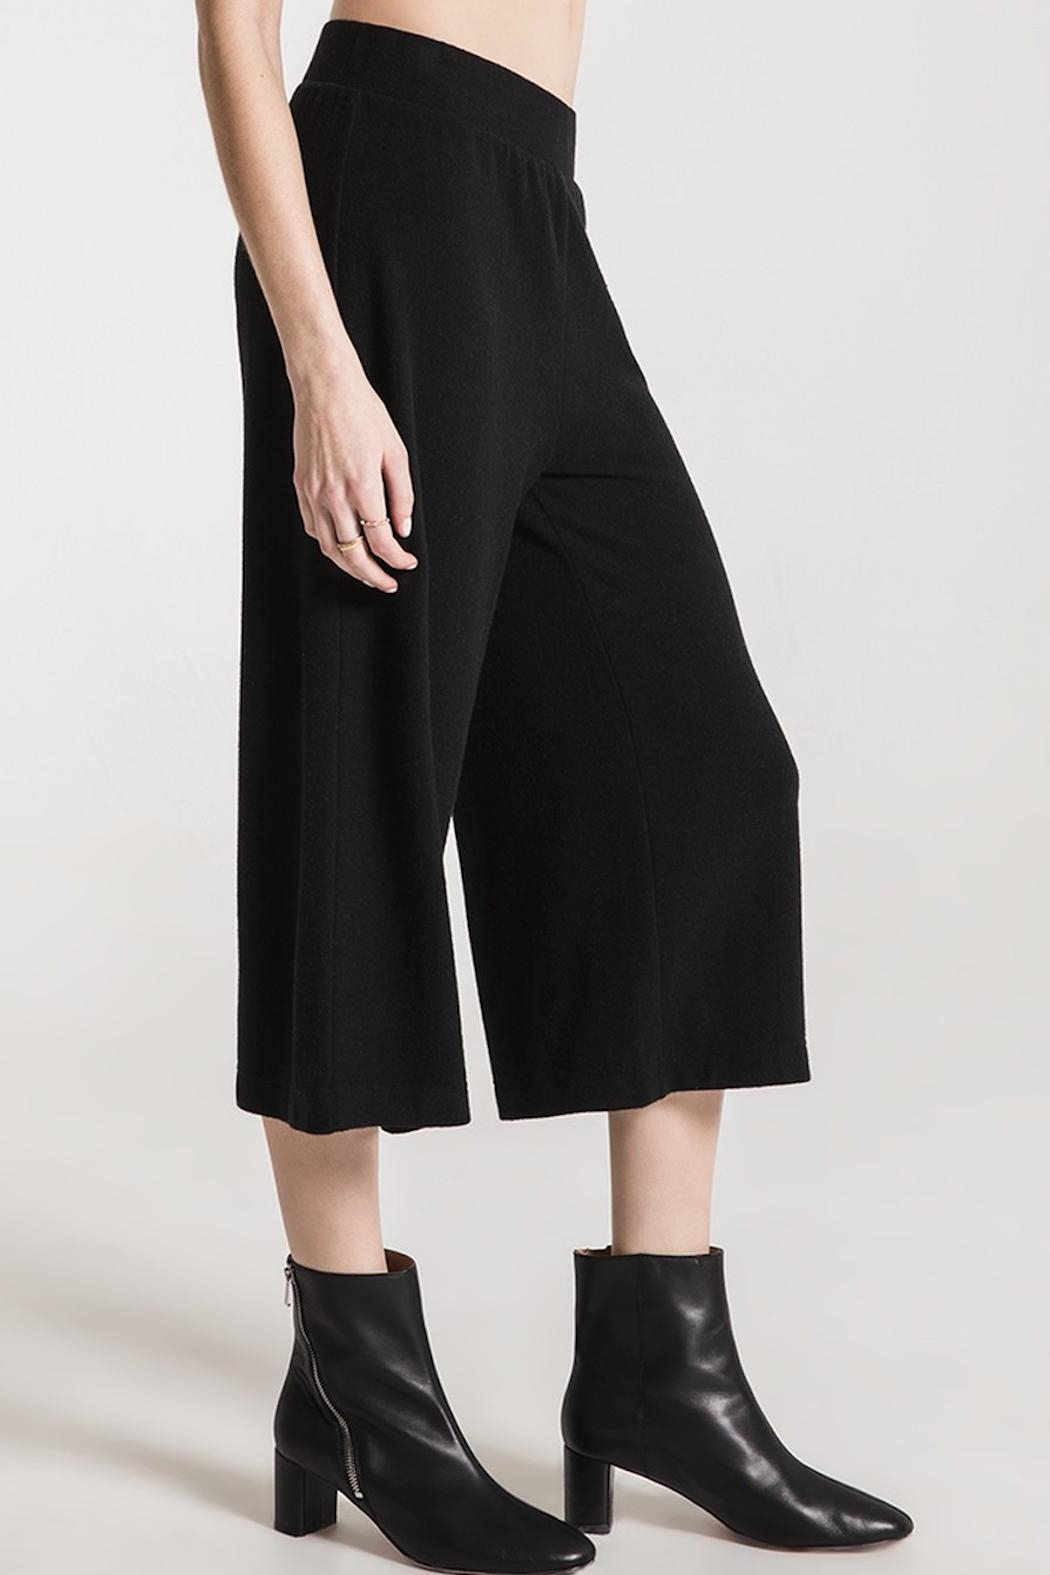 z supply Soft Knit Culottes - Front Full Image